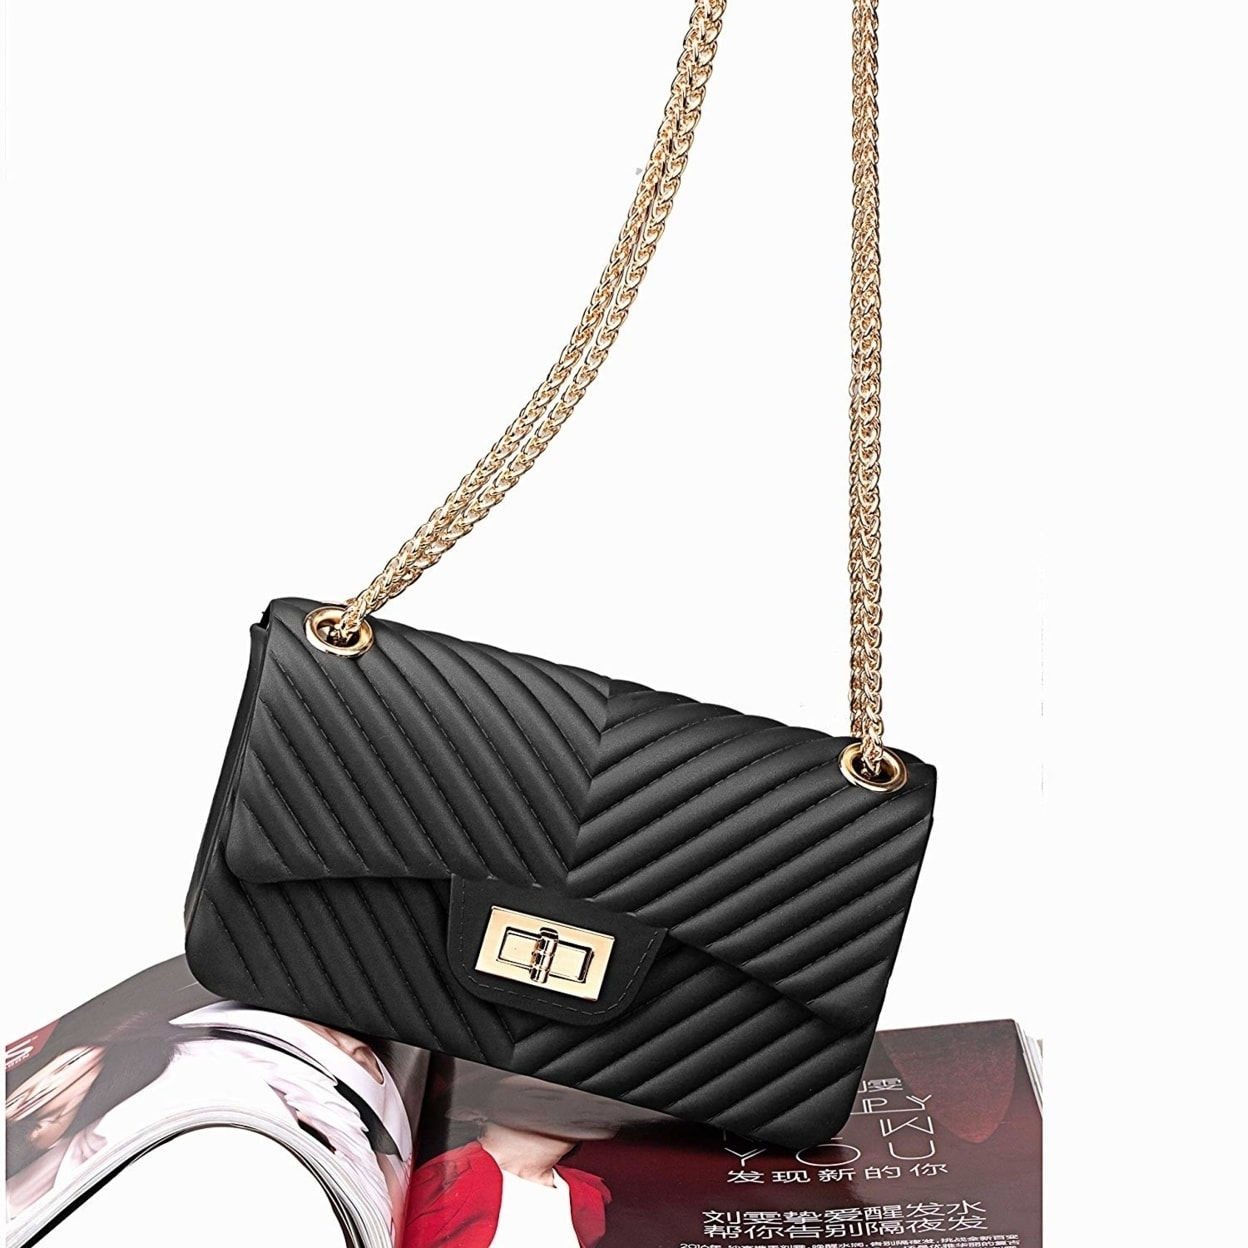 bc1b0f52bc3d Shop Women Fashion Shoulder Bag Jelly Clutch Handbag Quilted Crossbody Bag  with Chain - Free Shipping On Orders Over  45 - Overstock - 23488622